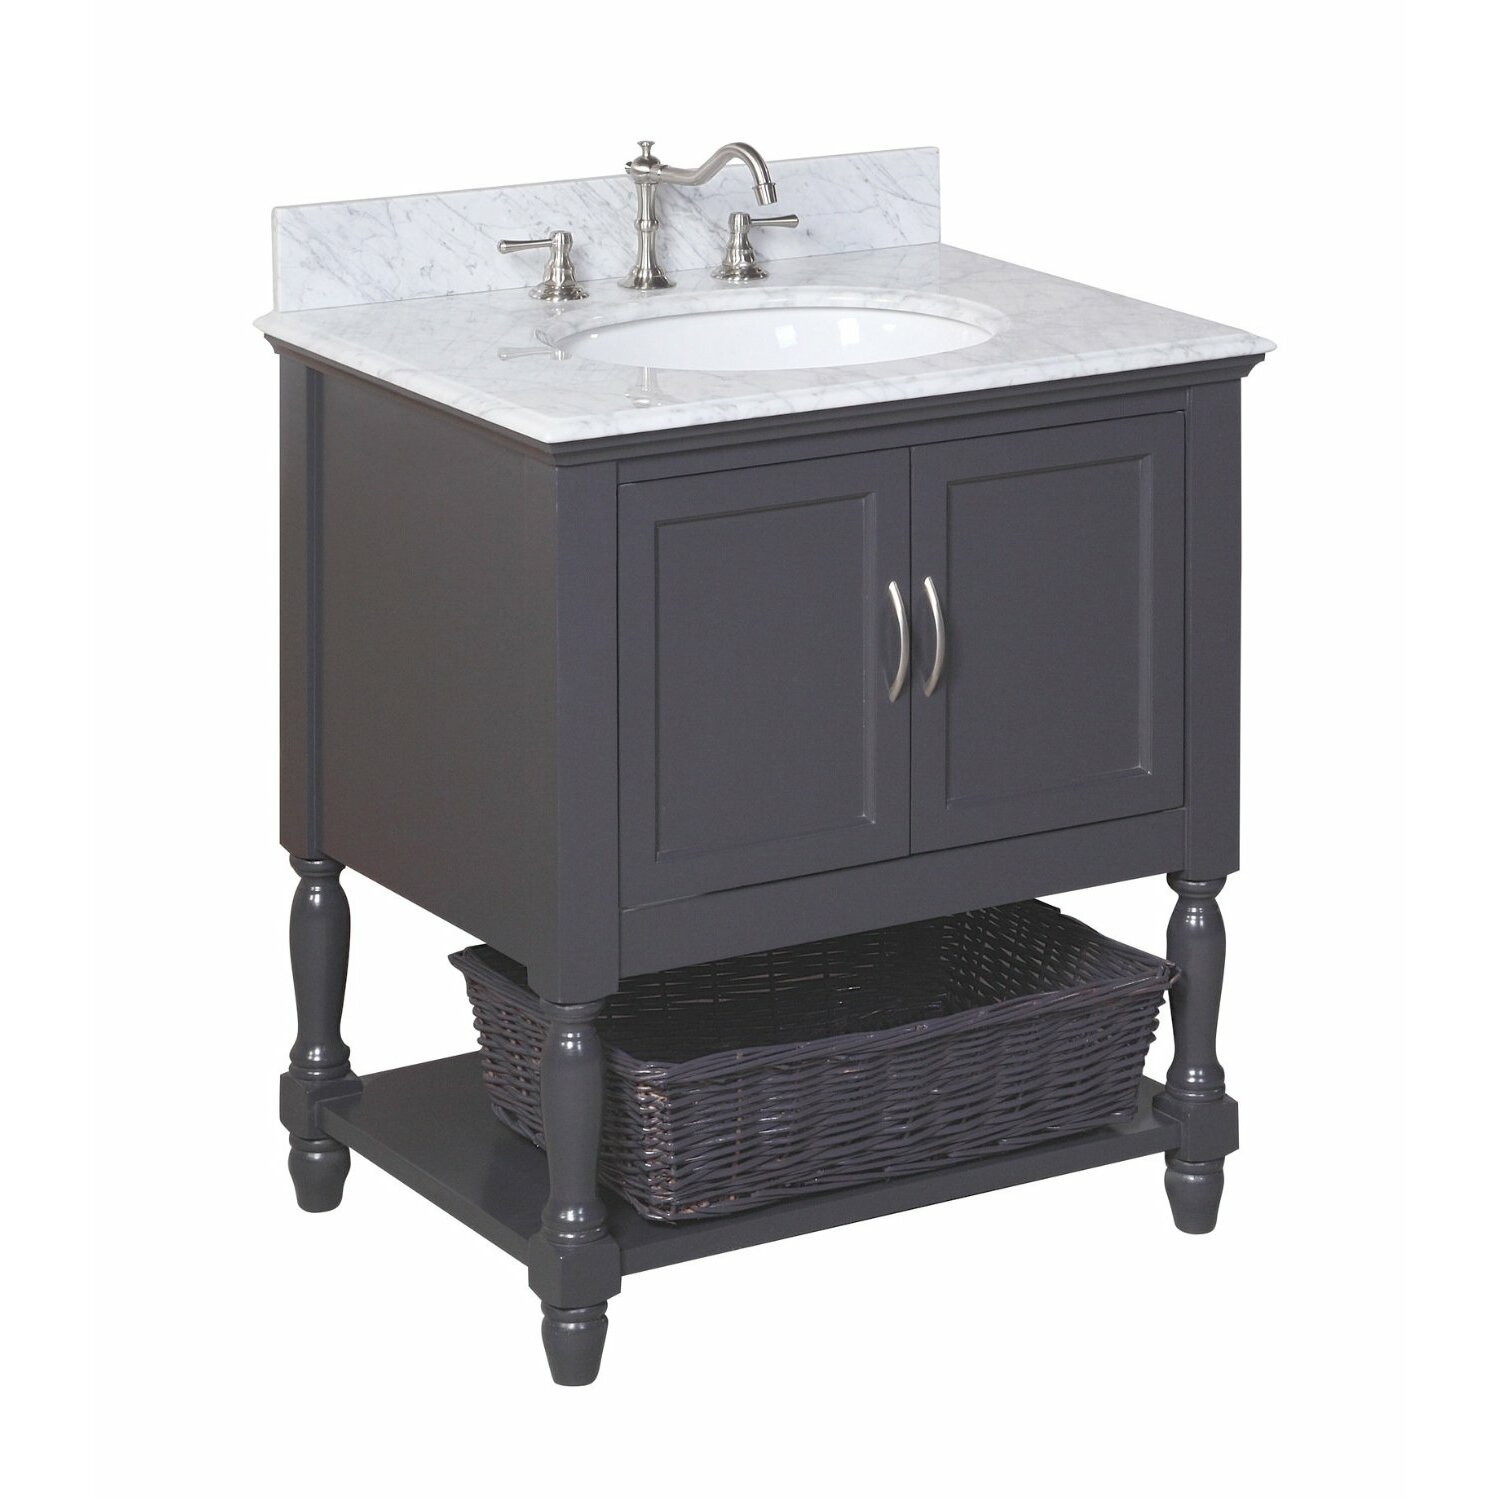 Kbc beverly 30 single bathroom vanity set reviews wayfair for Bath and vanity set